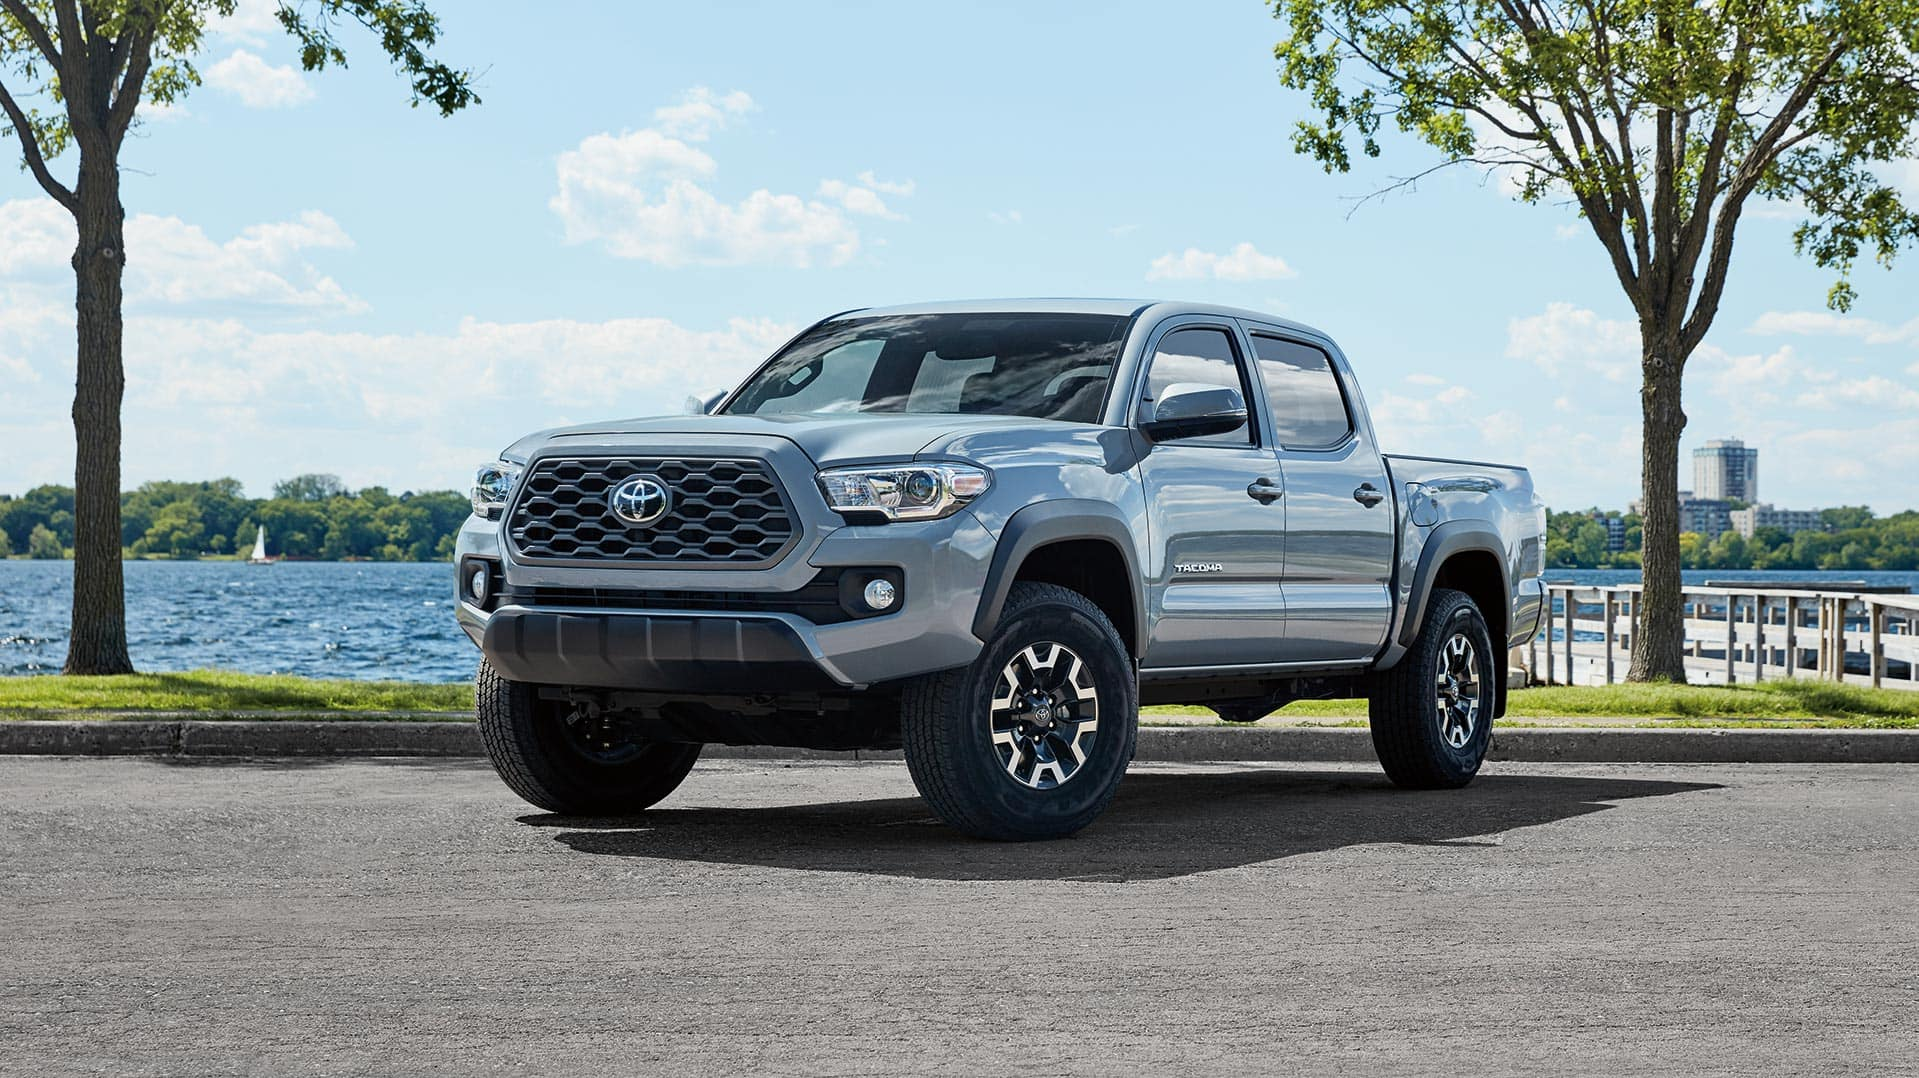 Glen Toyota is a Toyota Dealership in Fair Lawn near Glen Rock NJ | Grey MY20 Tacoma Parked in front of Water